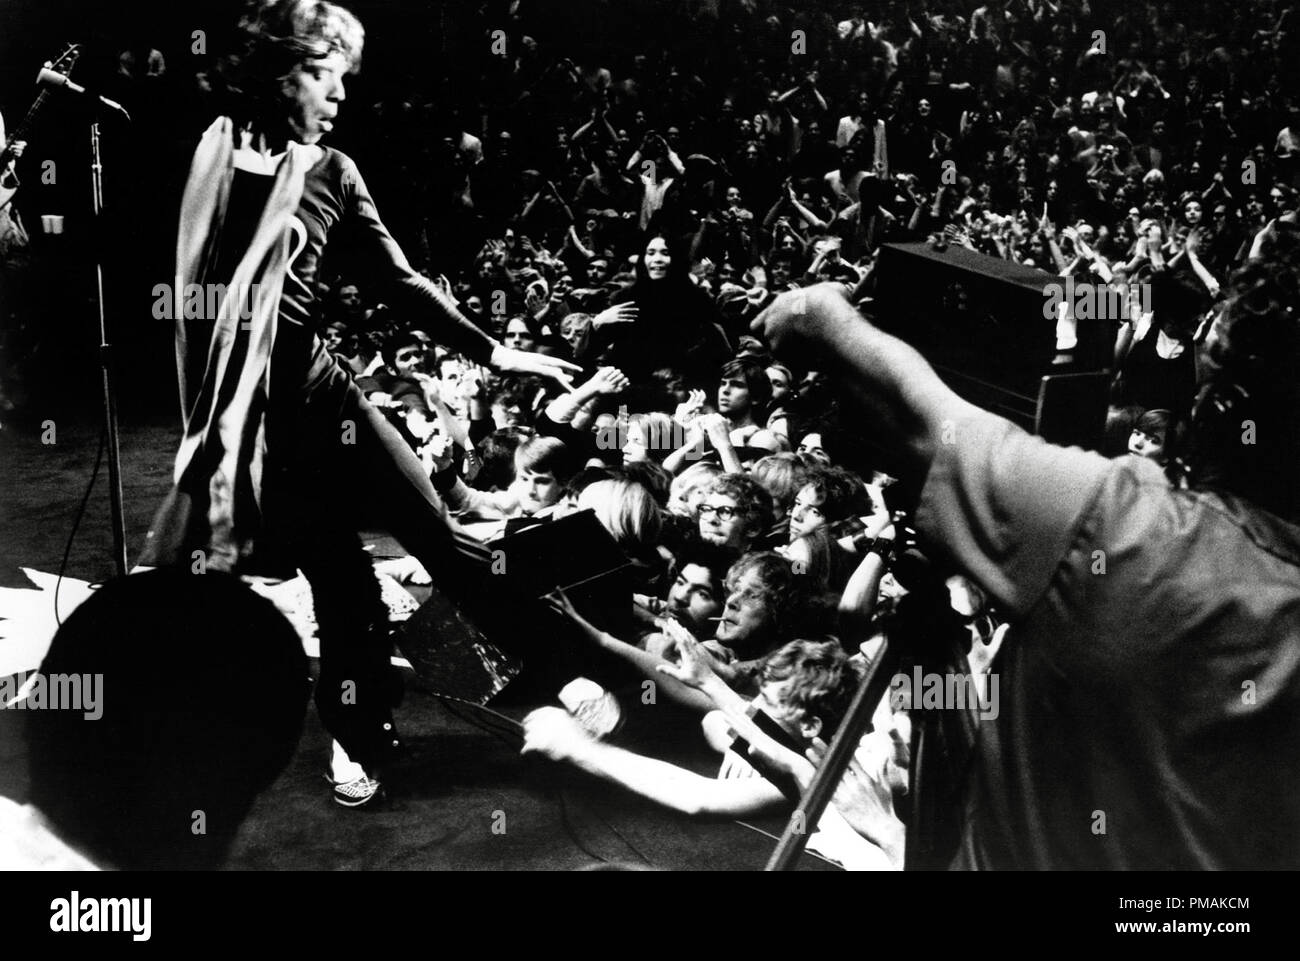 Mick Jagger performing onstage, 'Gimme Shelter' (1970)   File Reference # 33300_415THA - Stock Image